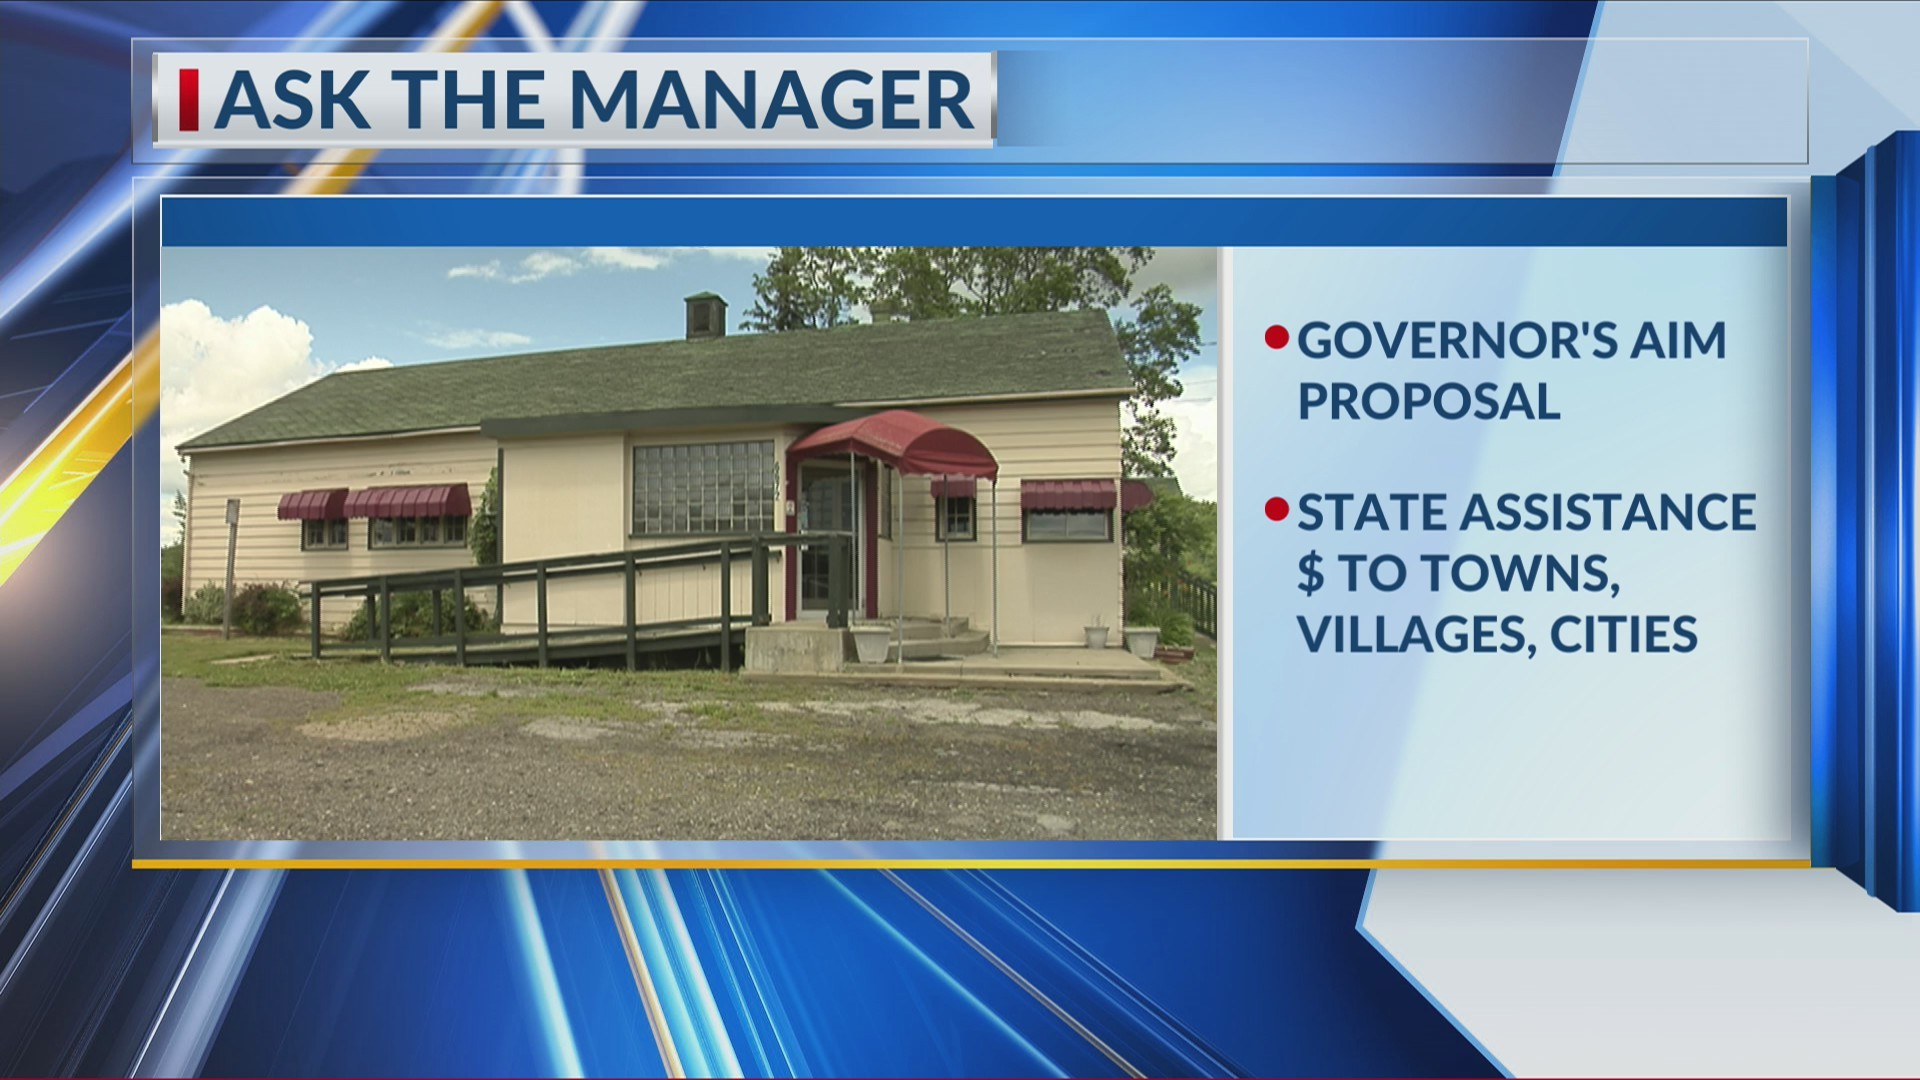 Ask the Manager: Governor's AIM Proposal